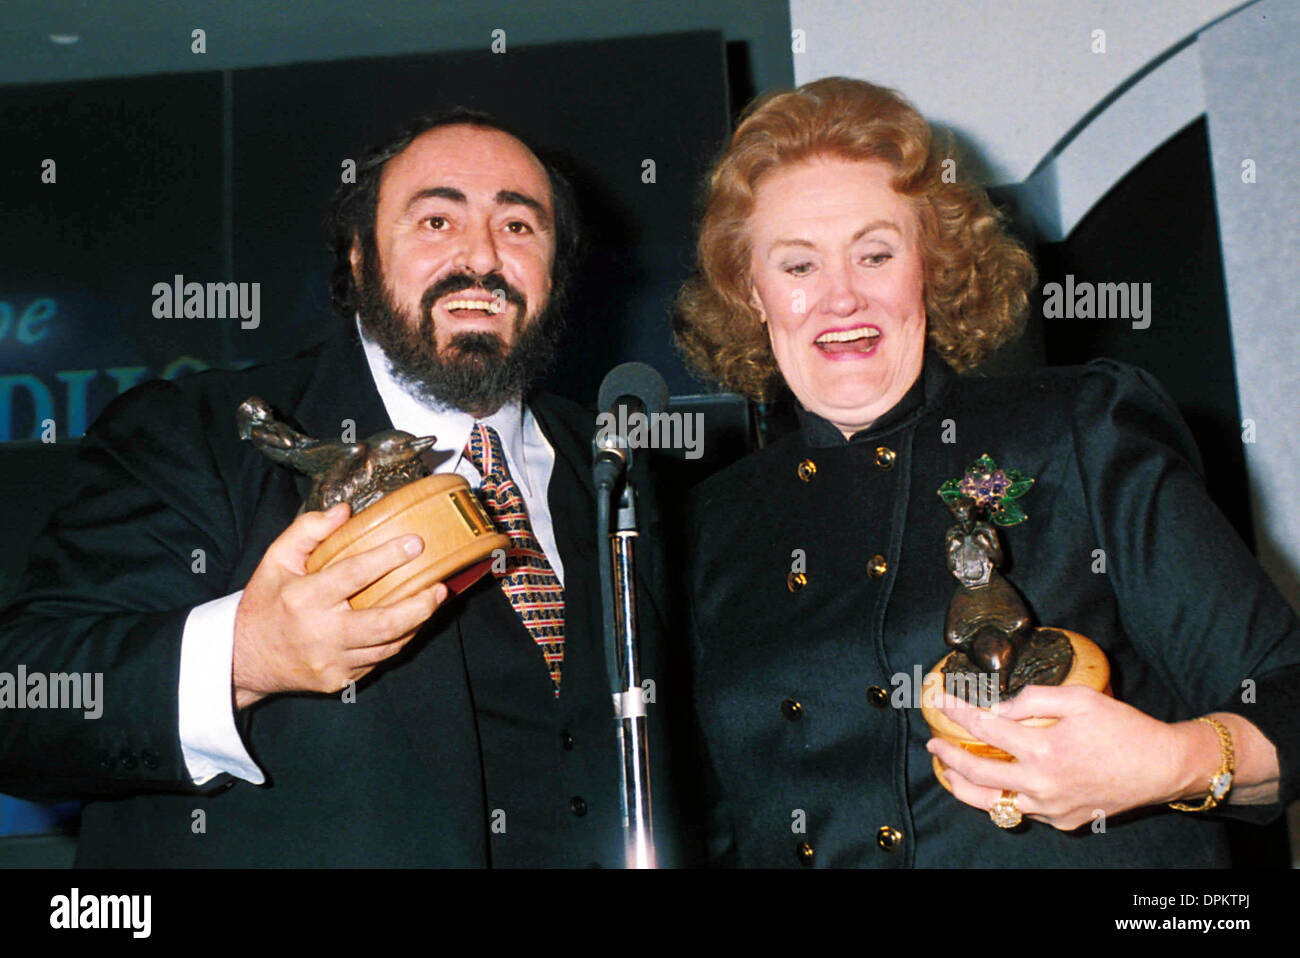 Aug. 16, 2006 - LUCIANO PAVAROTTI AND DAME JOAN SUTHERLAND.1991.A8397. DAVE BENETT-   GETTY IMAGES.LUCIANOPAVAROTTIRETRO(Credit Image: © Globe Photos/ZUMAPRESS.com) - Stock Image